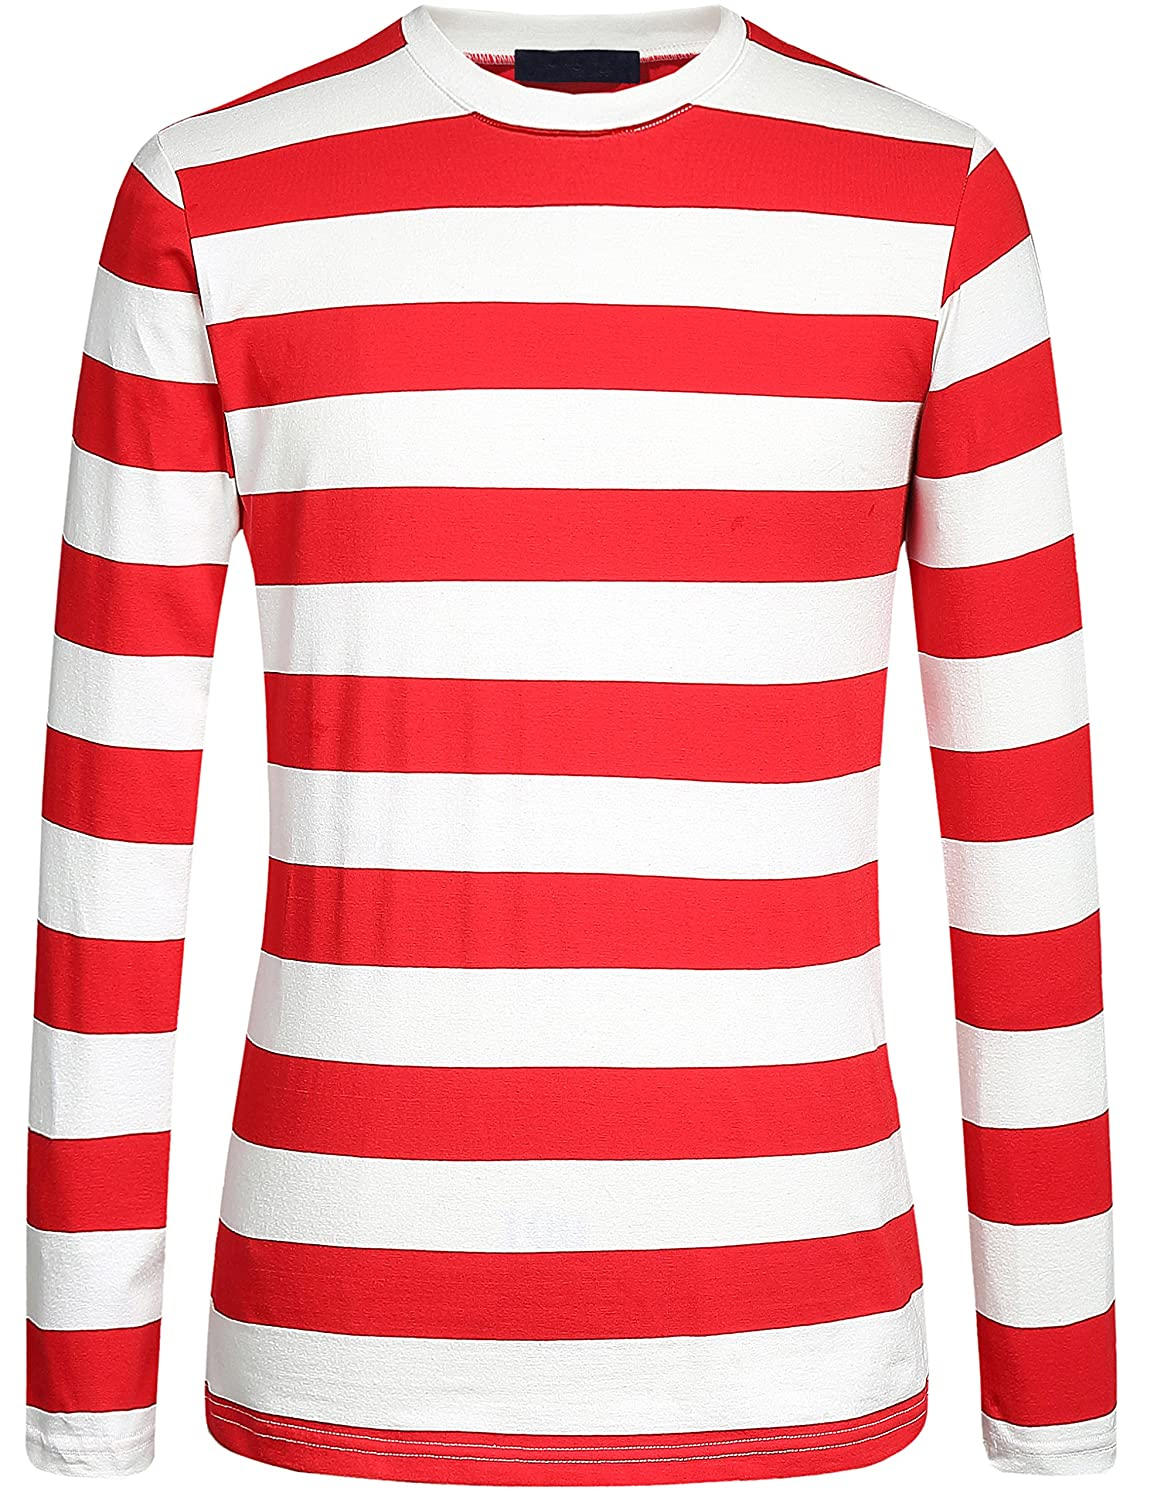 Camii Mia Men's Cotton Crew Neck Long Sleeves Stripe T-Shirt SN-1043(Men)